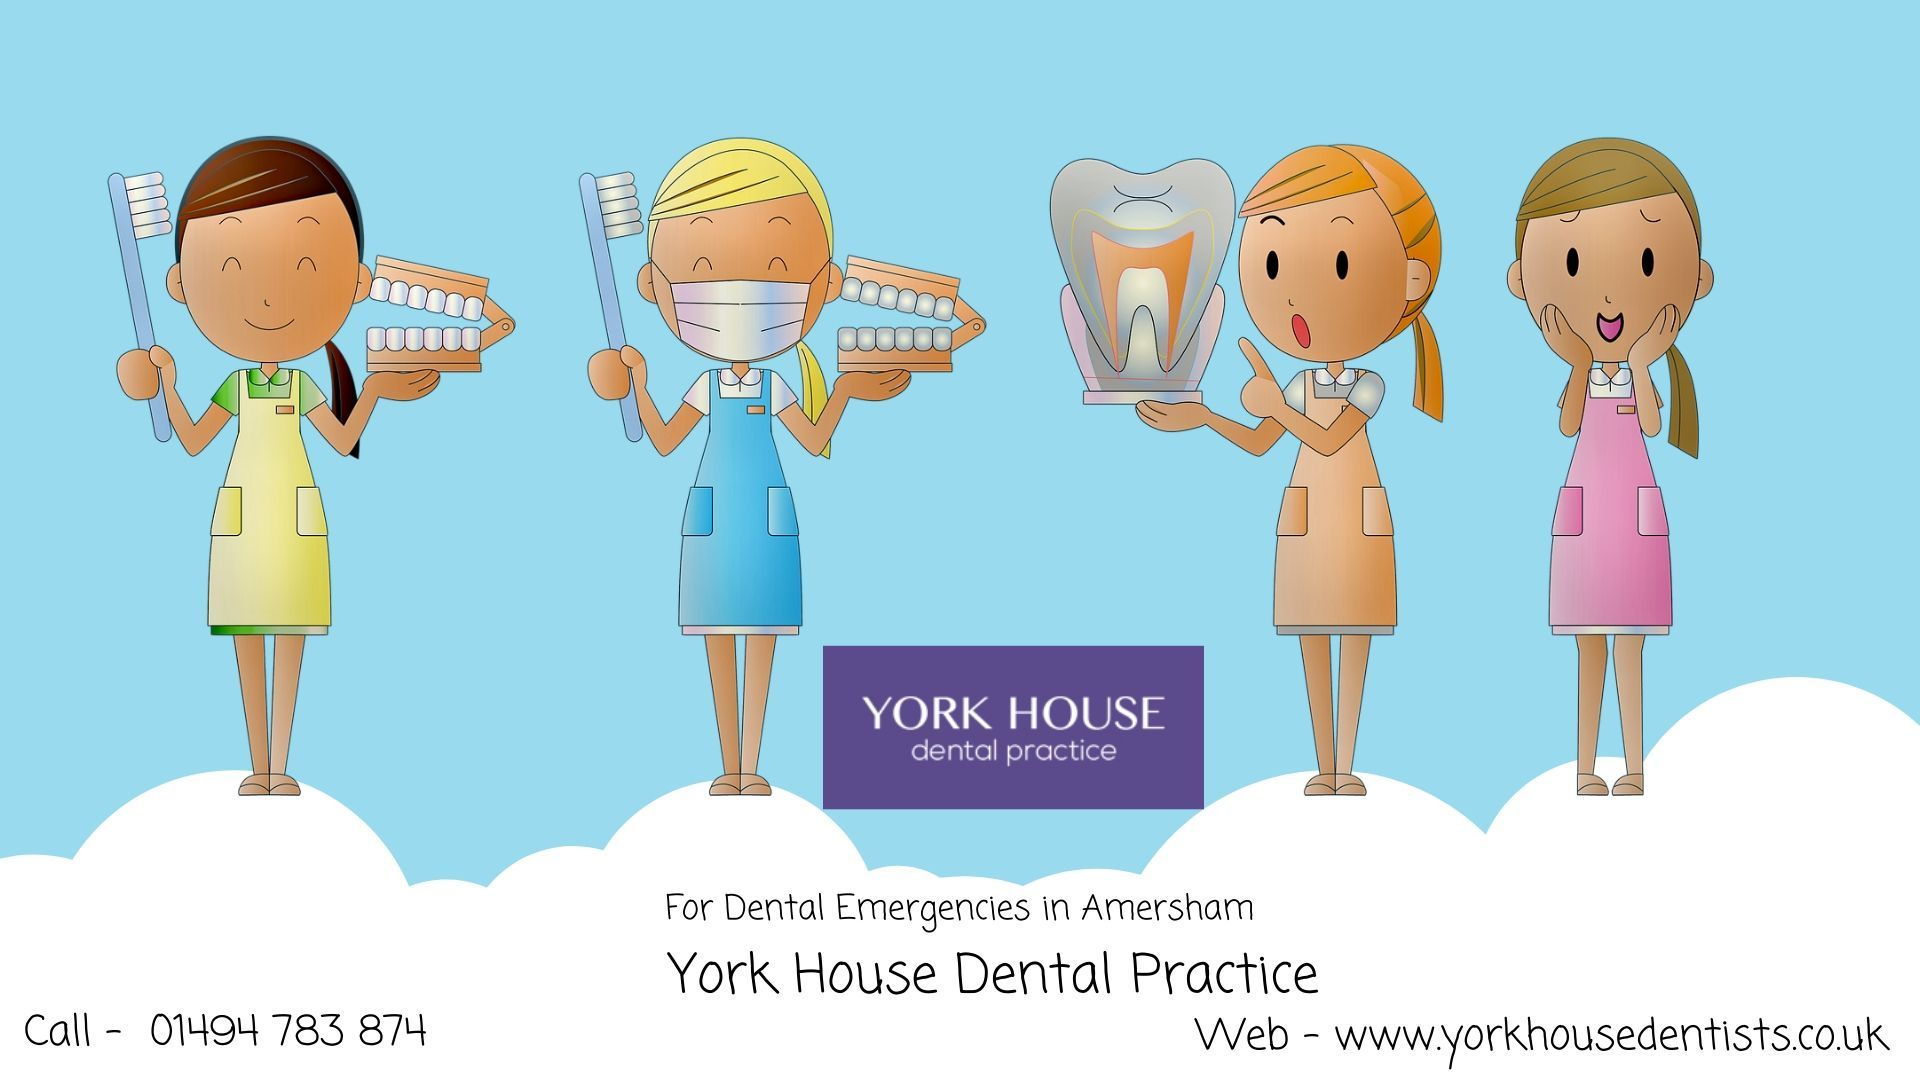 Dental Emergencies Amersham Dental emergency, Emergency